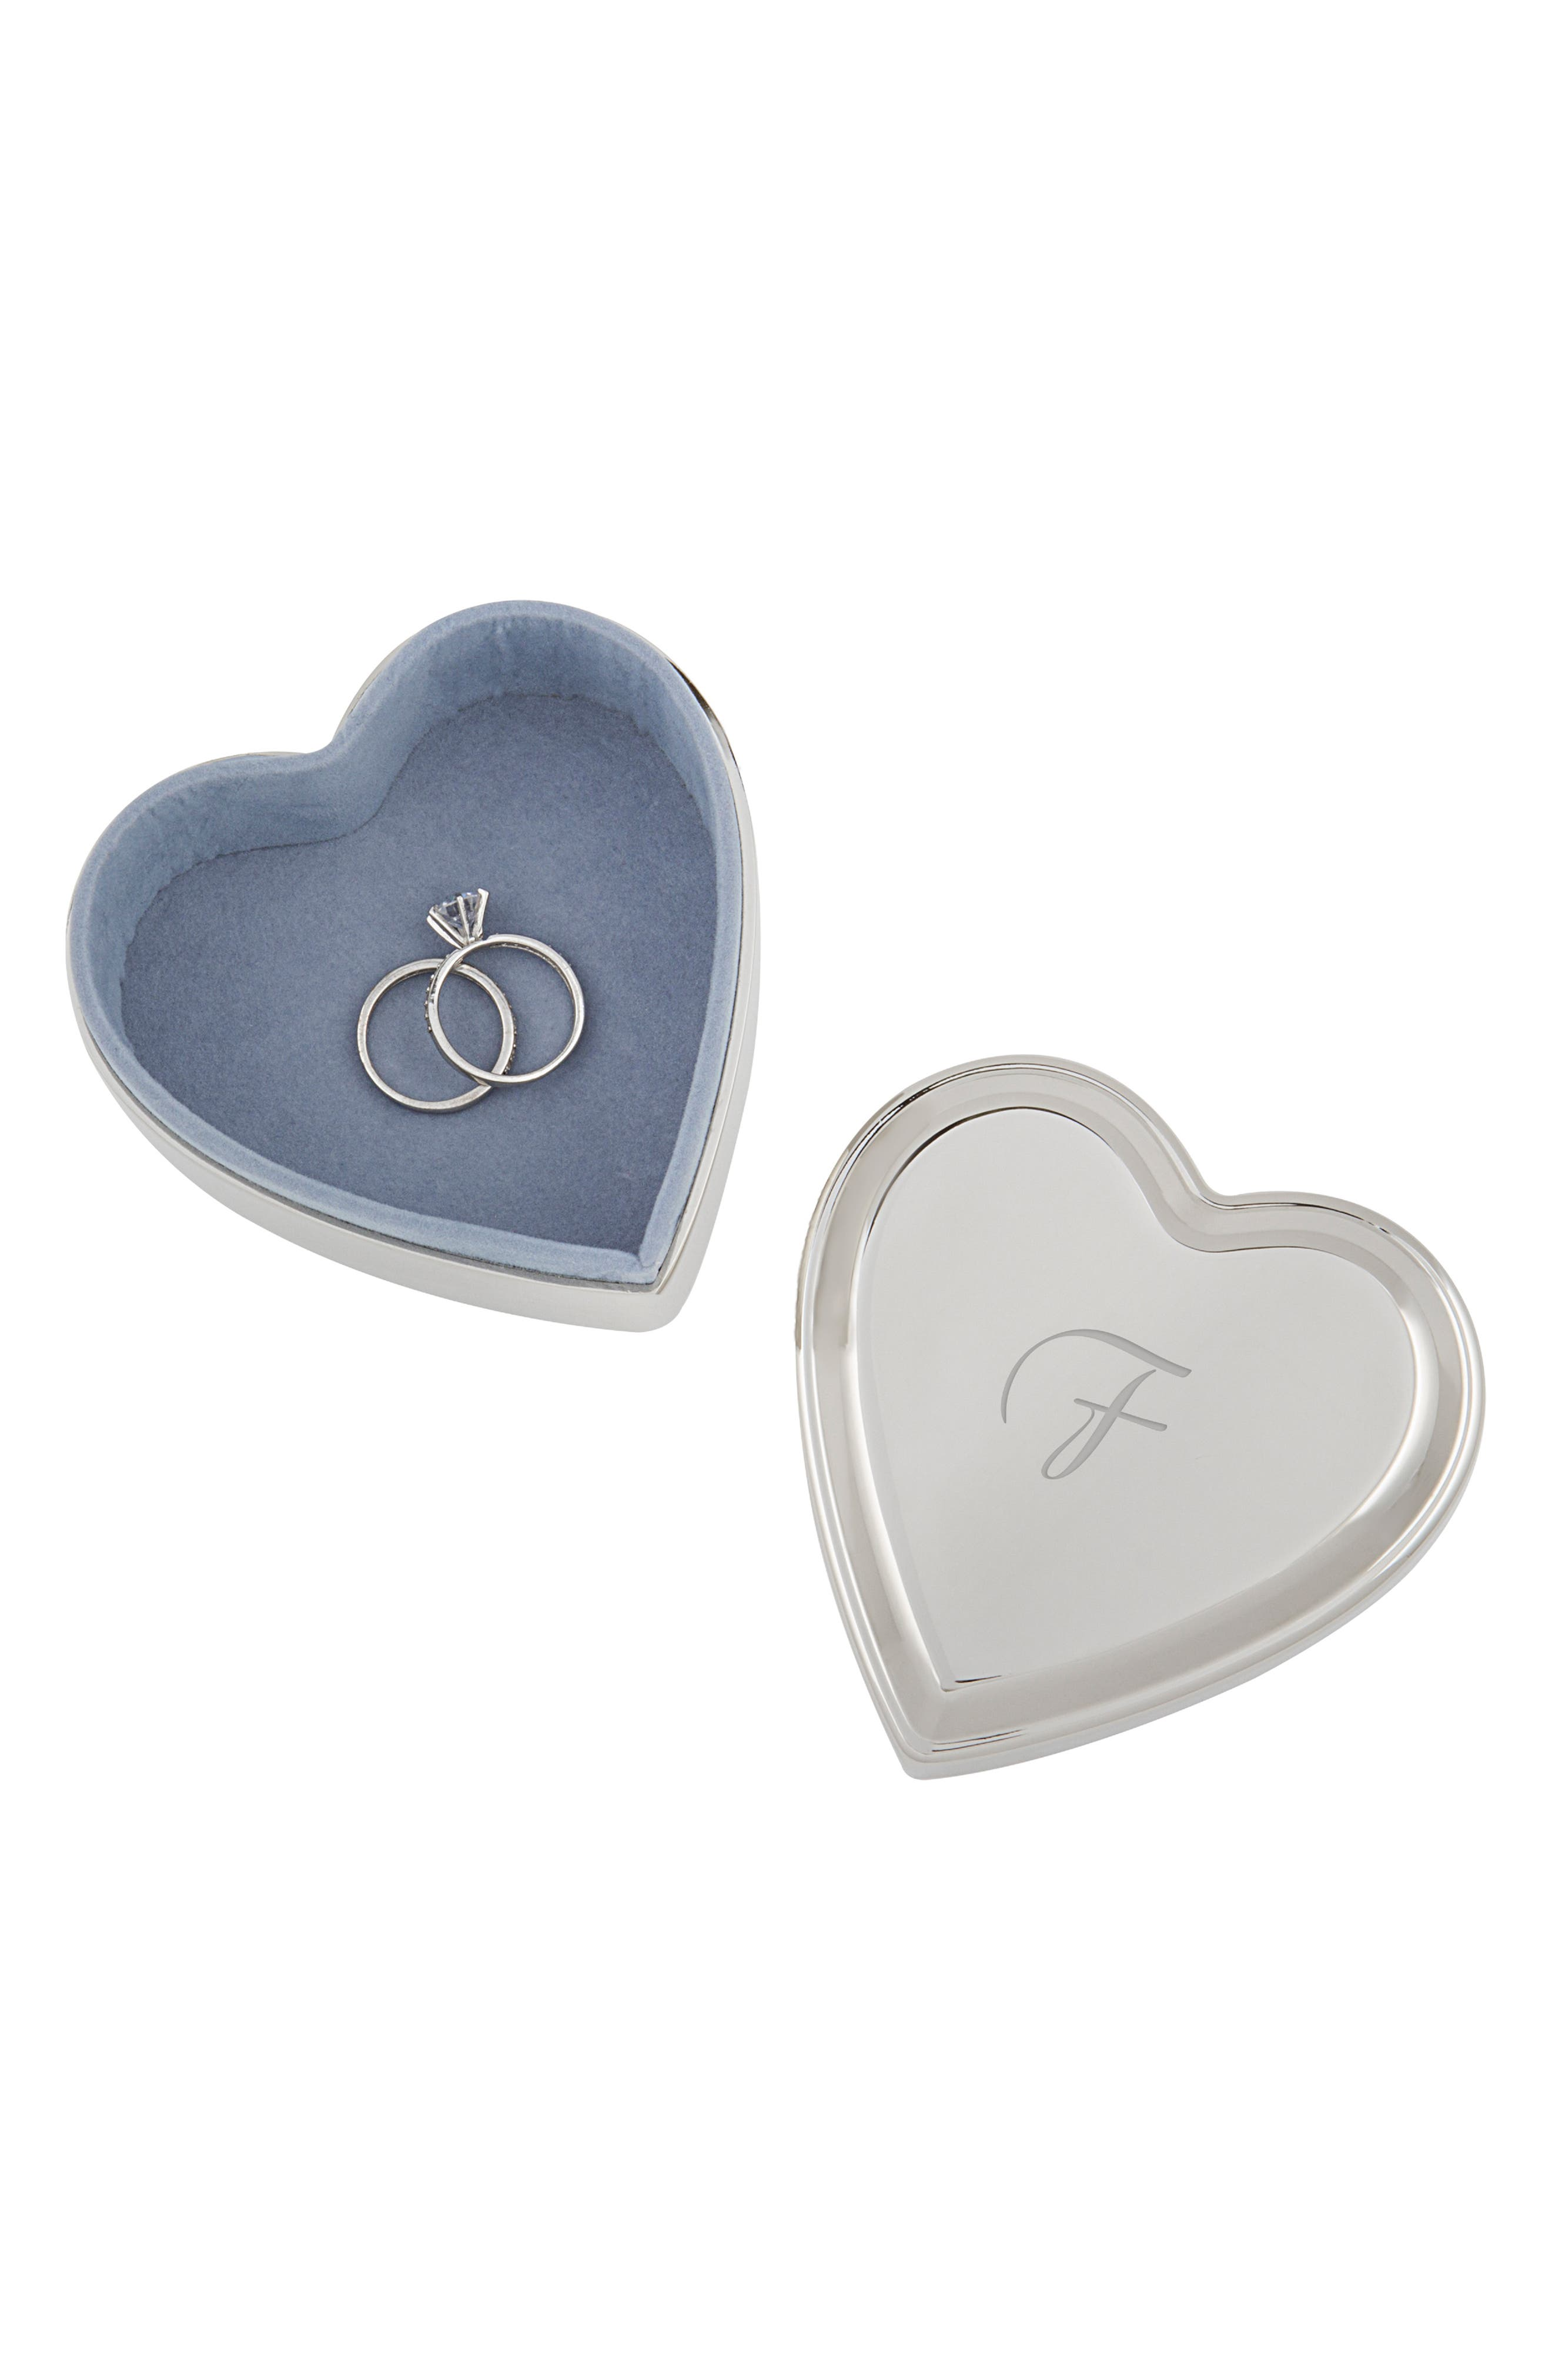 Cathys Concepts Monogram Heart Keepsake Box,                             Alternate thumbnail 5, color,                             BLANK